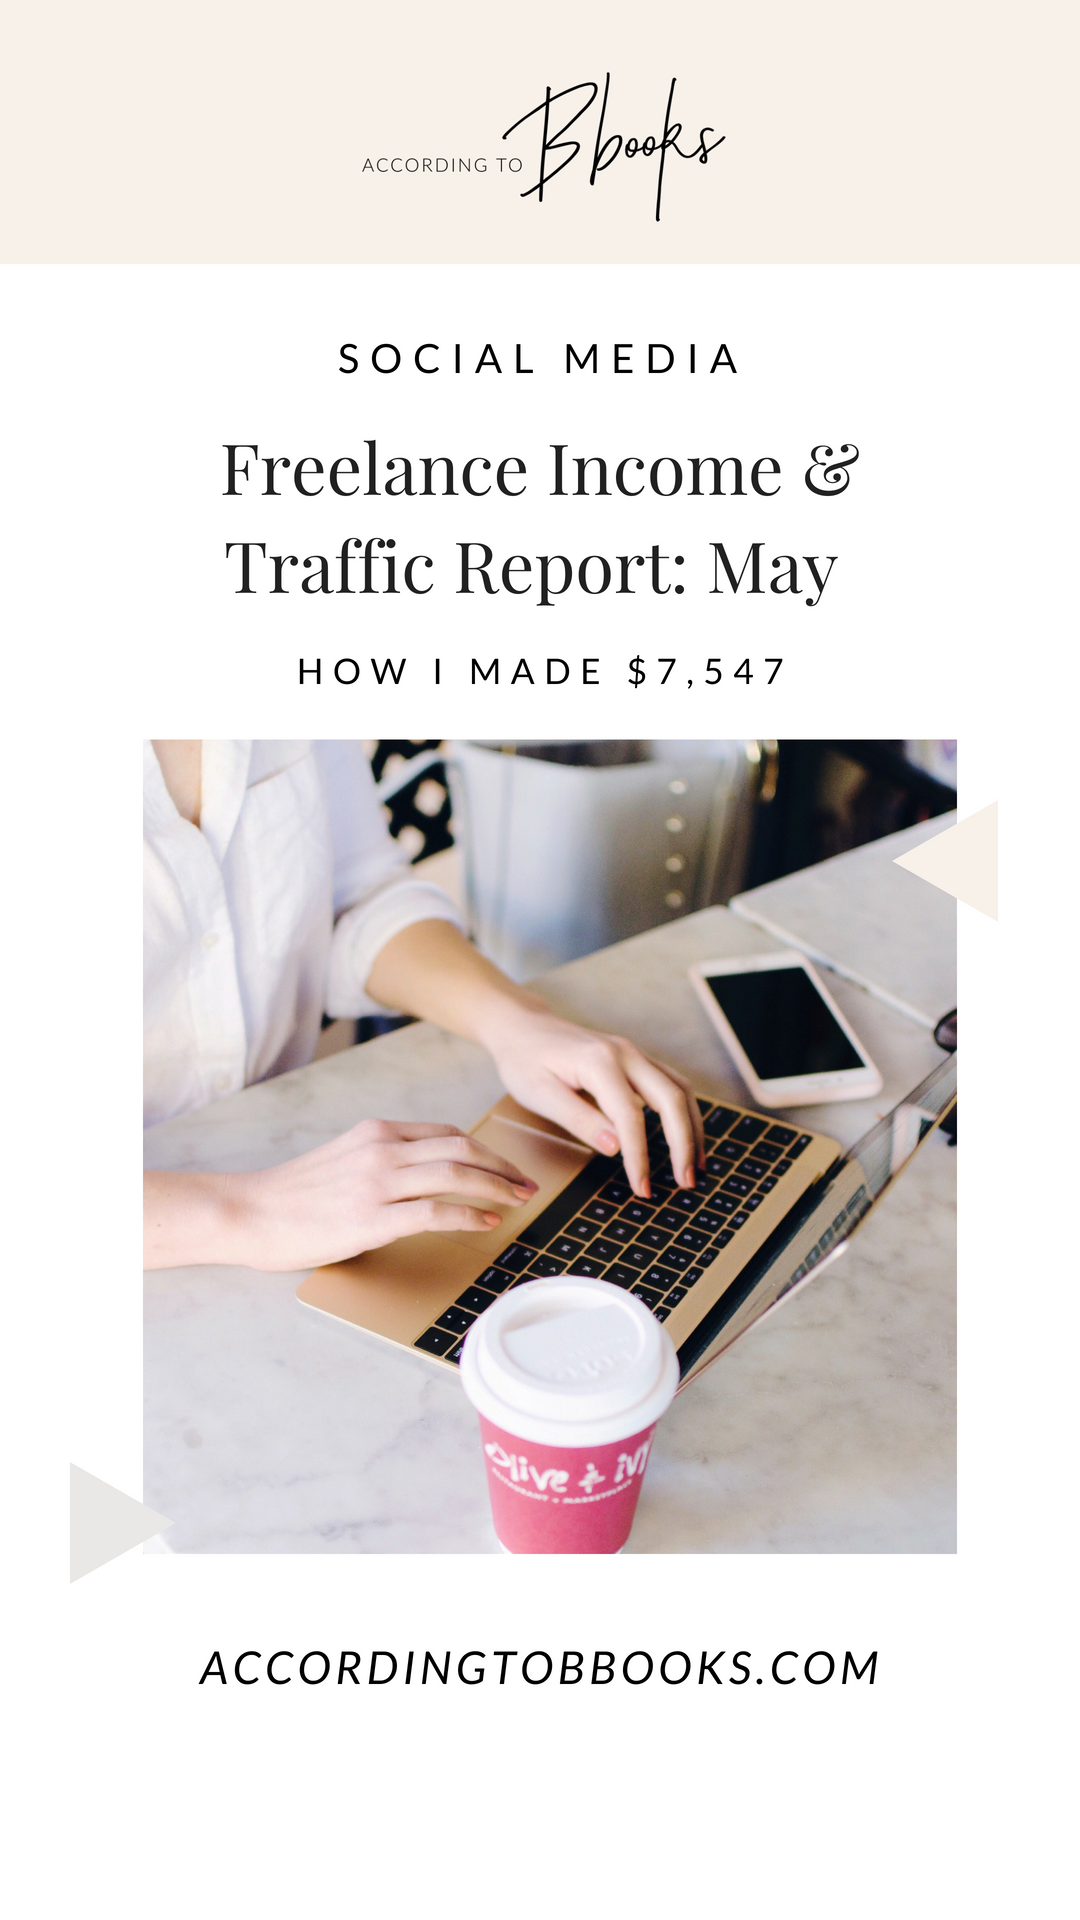 Want to know the in's and out's of my expenses and income as a freelancer? I've been doing this full-time for 8 months, so click to see how I tackle it!